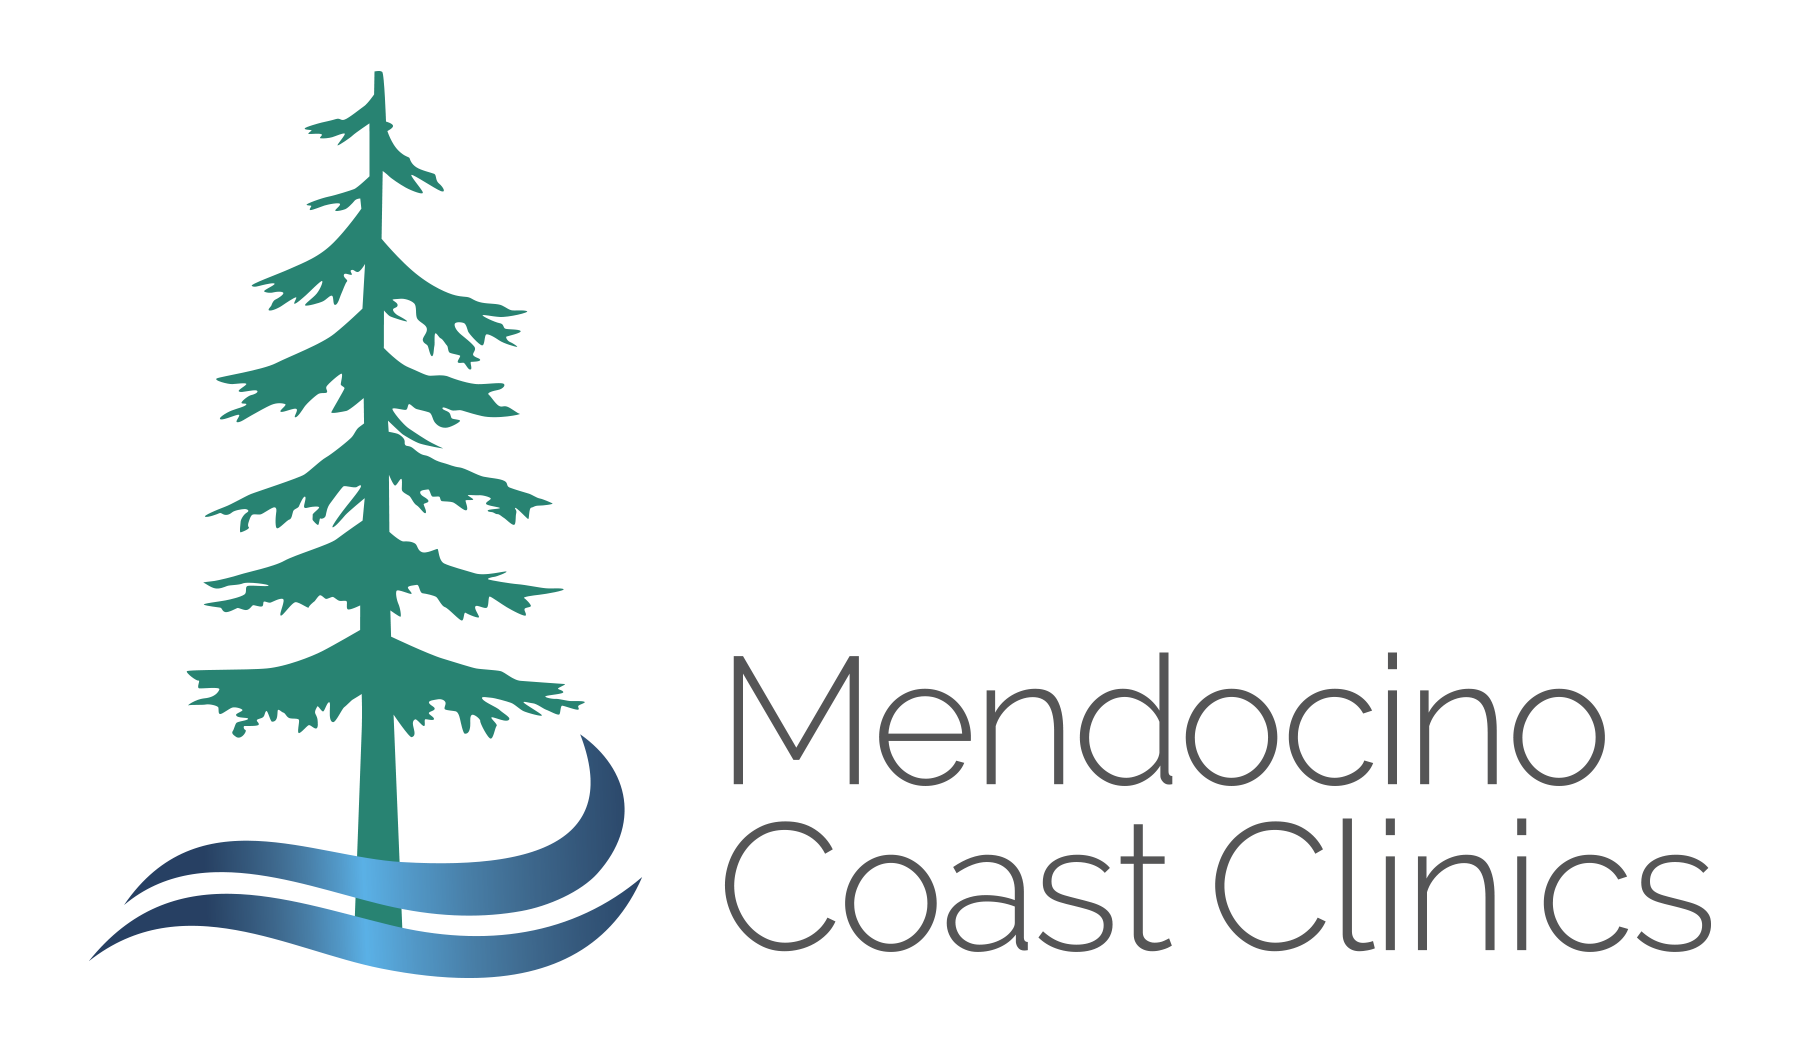 https://www.crabwinebeermendo.org/wp-content/uploads/2019/06/MendoCoastClinics-logo-color.png